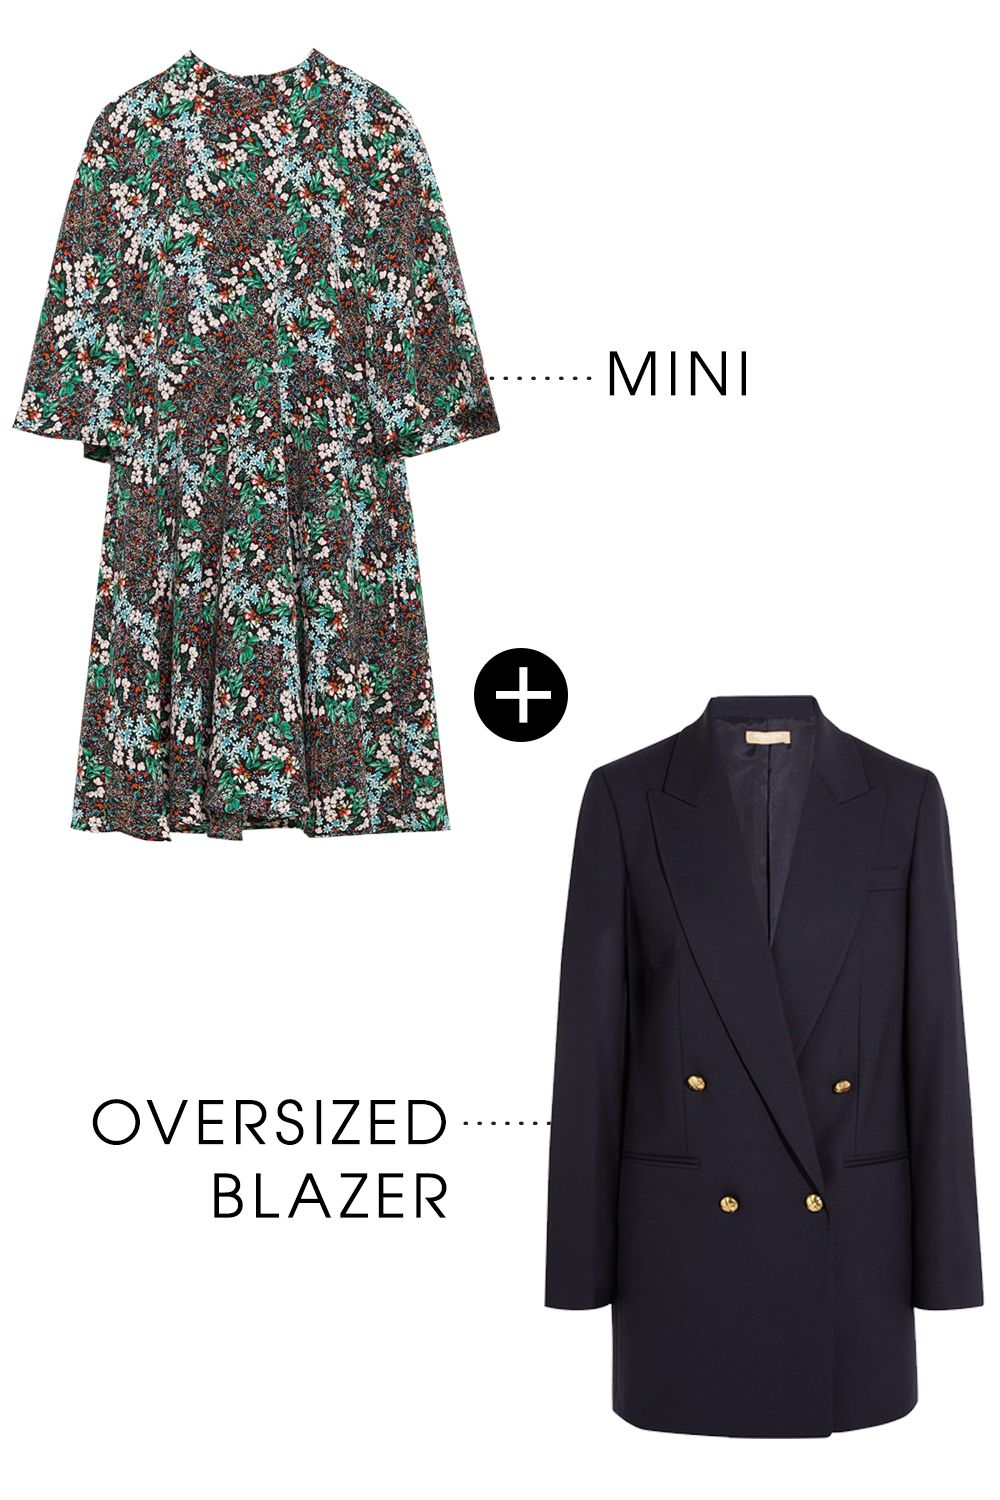 """<p>An oversized blazer is wardrobe staple that works across season season. Use it to play with proportion, like pairing a mini dress with a larger sweater or jacket, for a no-fail layering trick.</p><p>Zara Multicolor Dress with Flared Sleeves, $50; <a href=""""http://www.zara.com/us/en/woman/dresses/view-all/multicolored-dress-with-flared-sleeves-c733885p3026544.html"""">zara.com</a></p><p>Michael Kors Collection Stretch Wool Gaberdine Blazer, $1,250; <a href=""""http://rstyle.me/n/bdwxkrbc6jf"""">net-a-porter.com</a></p>"""